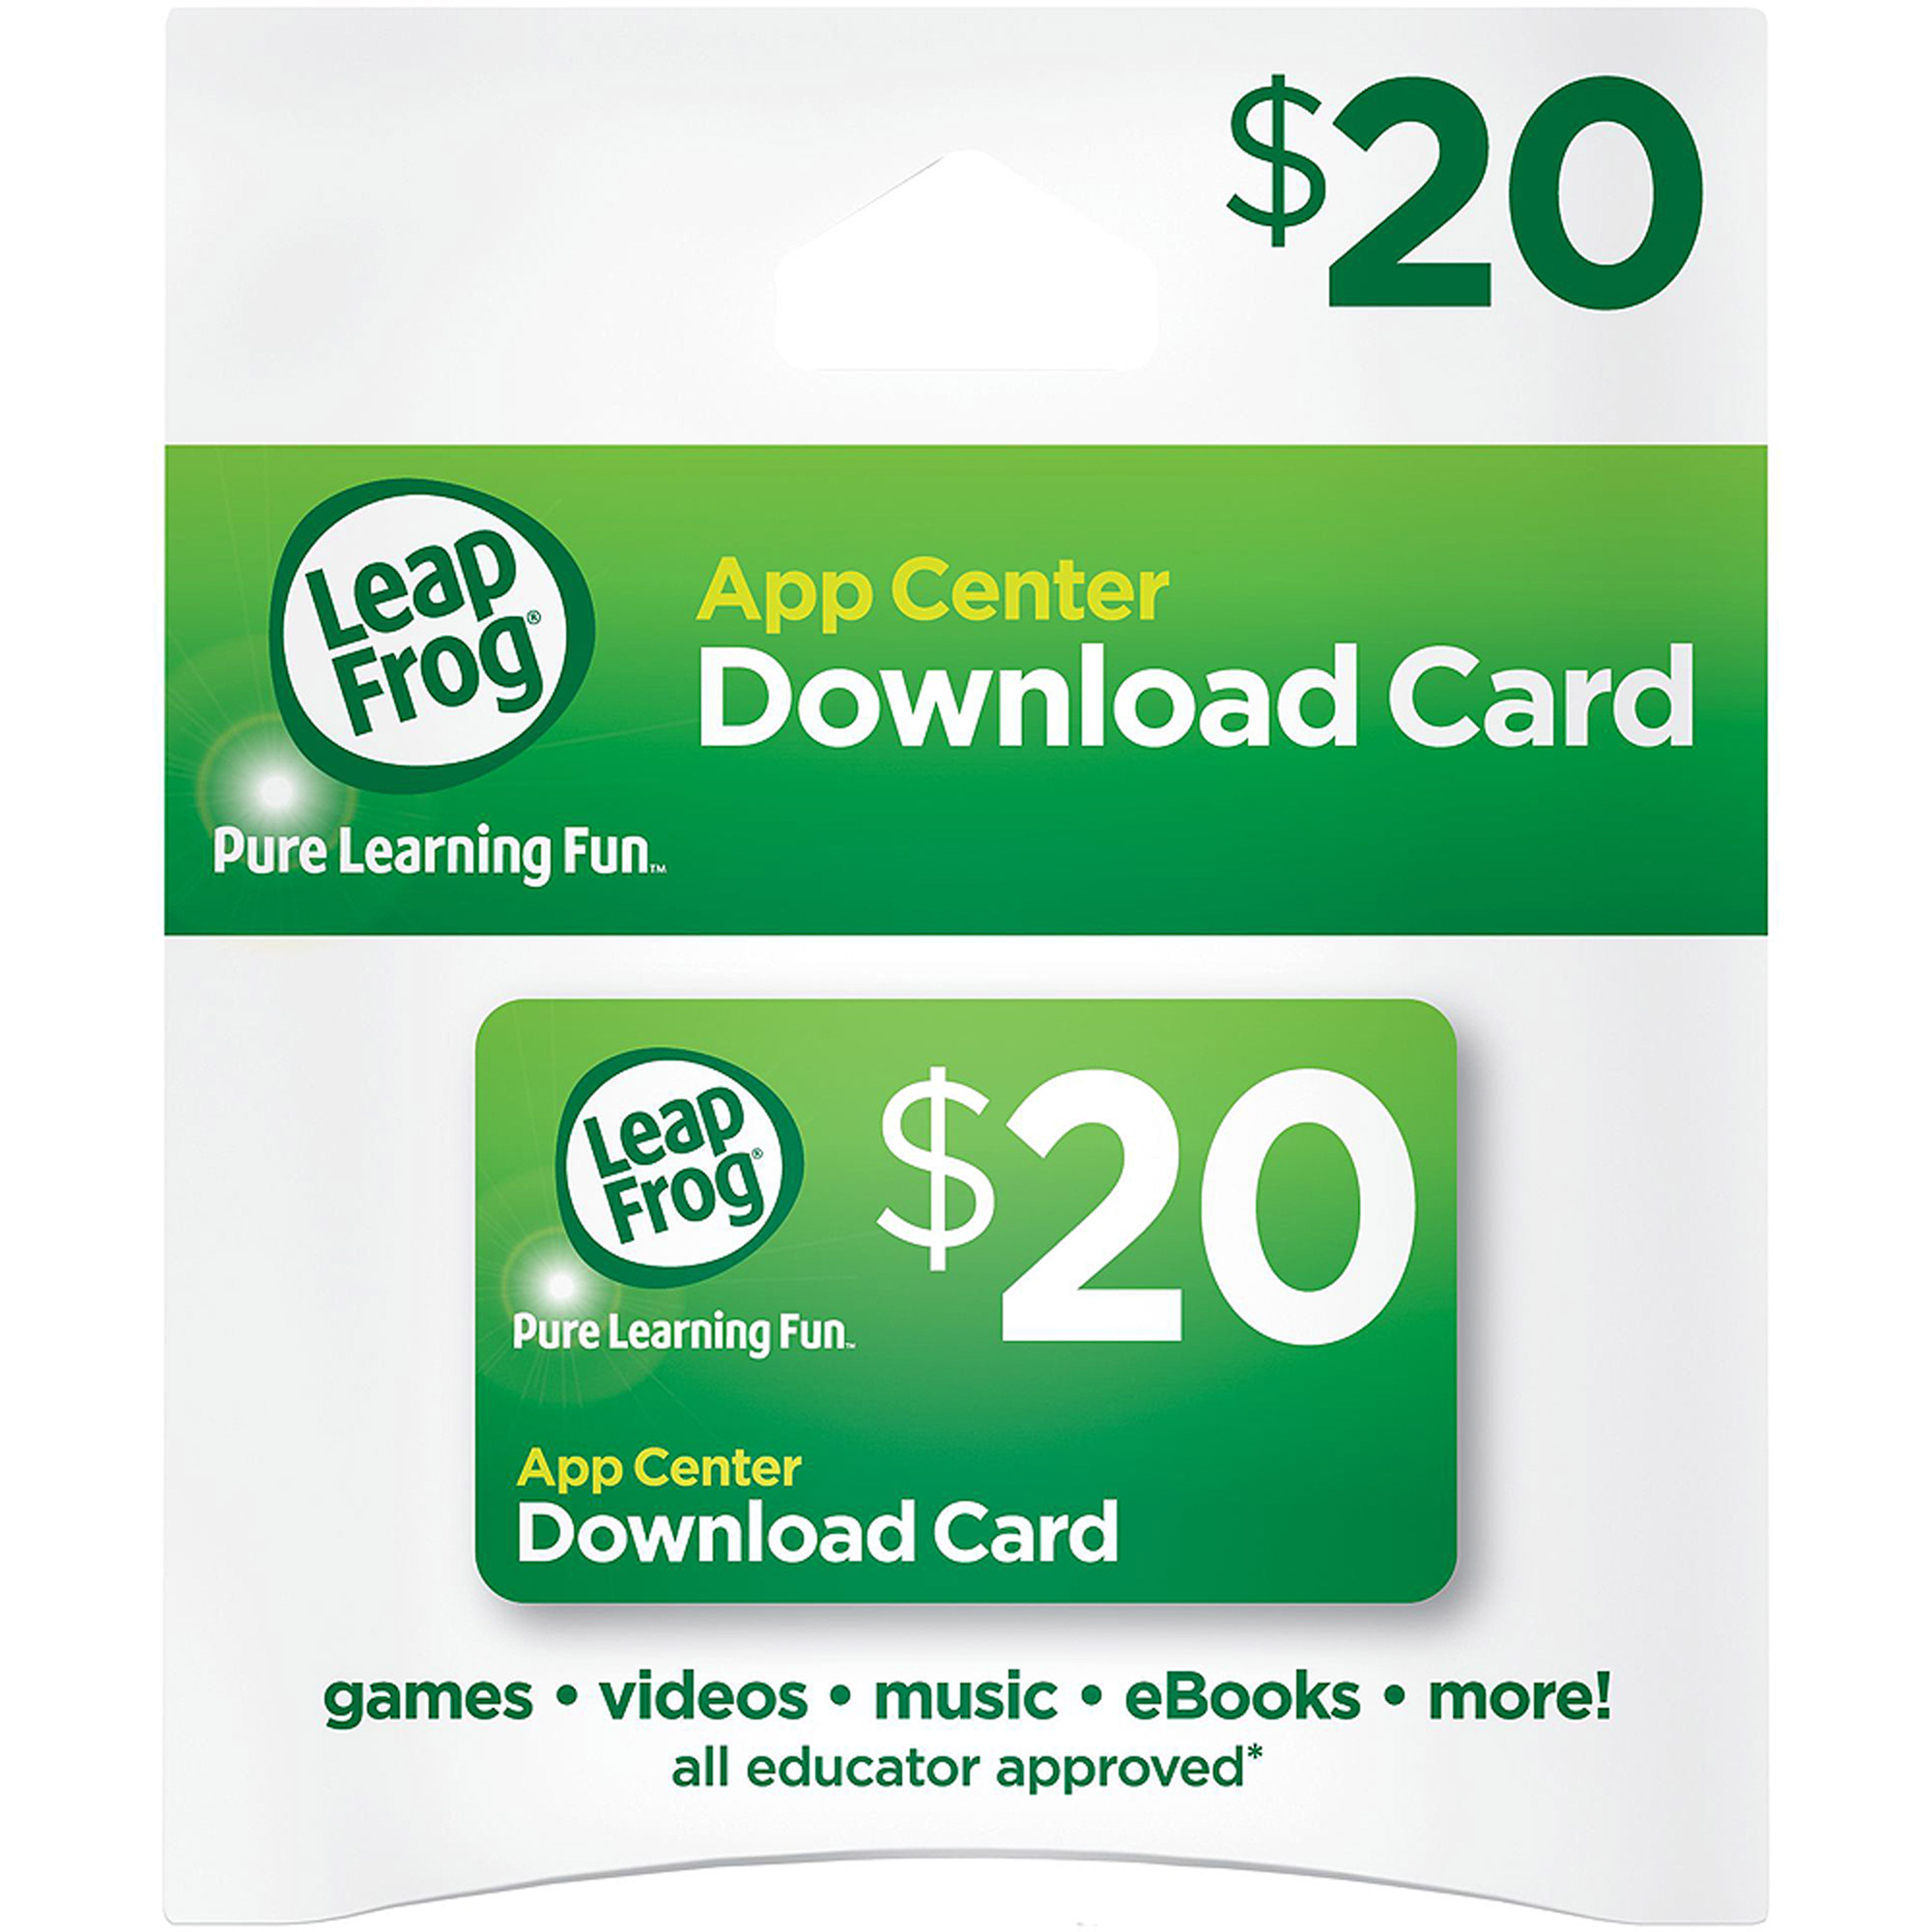 LeapFrog App Center Download Card (works with LeapPad tablets, LeapTV, LeapsterGS, Leapster Explorer and... by LeapFrog